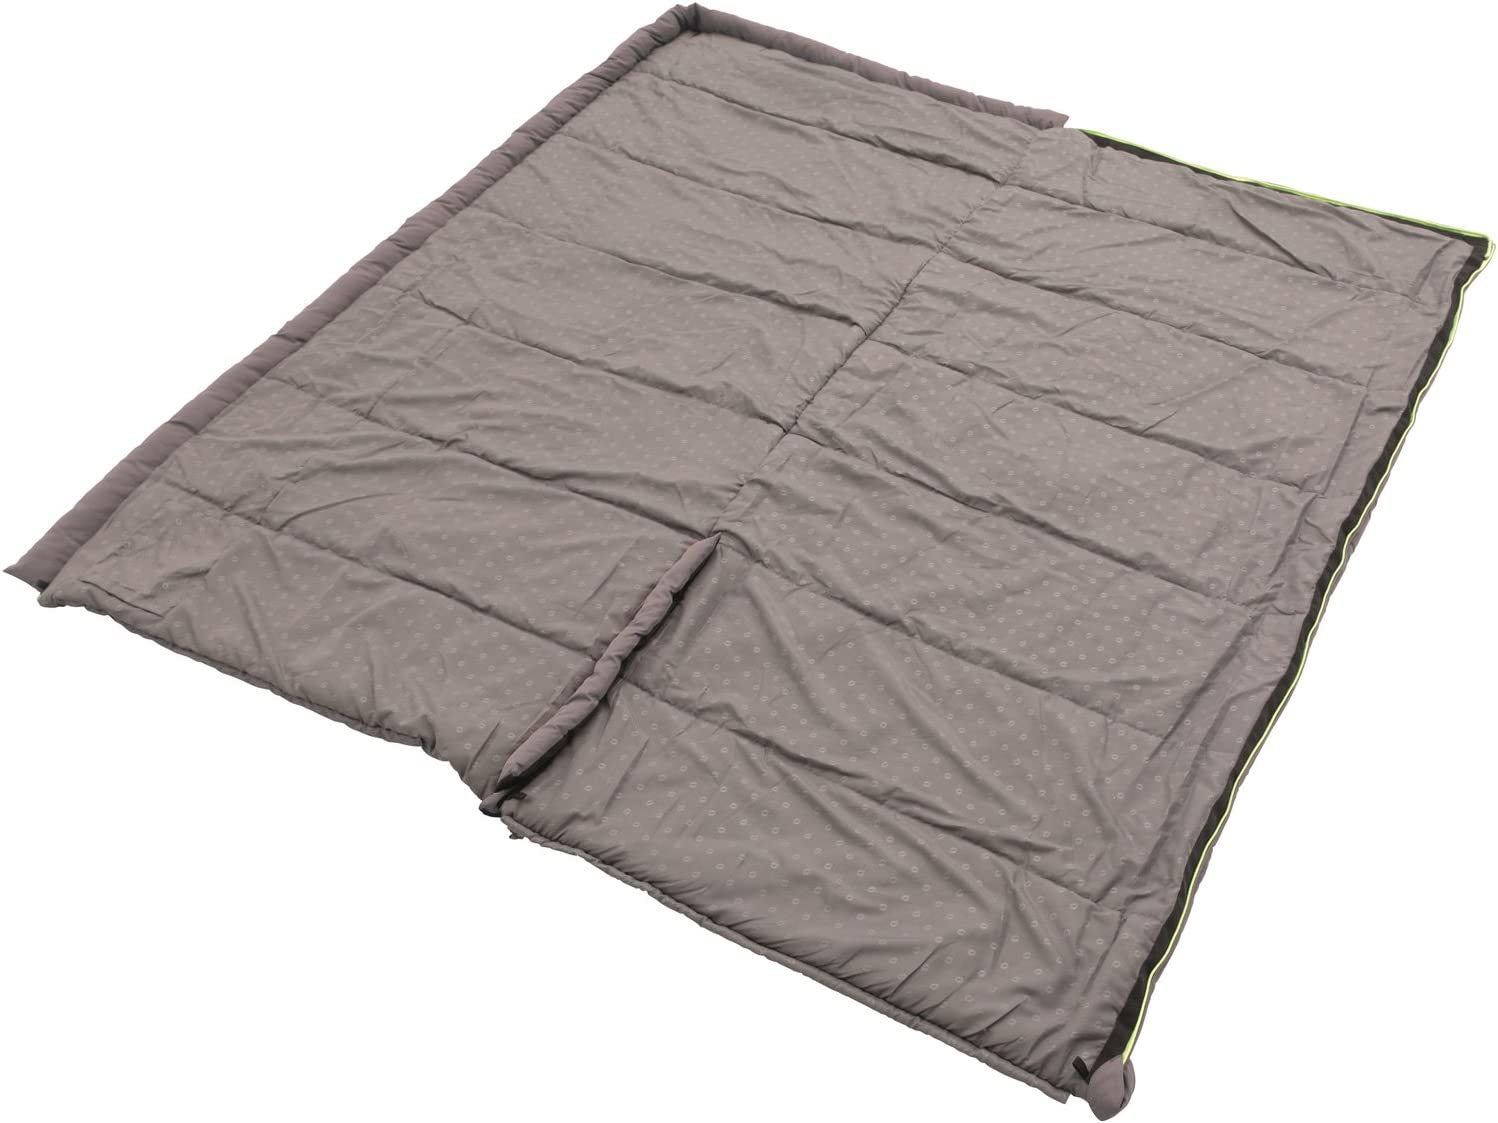 Campingschlafsack 1 Grad Outwell Schlafsack Contour Lux Double